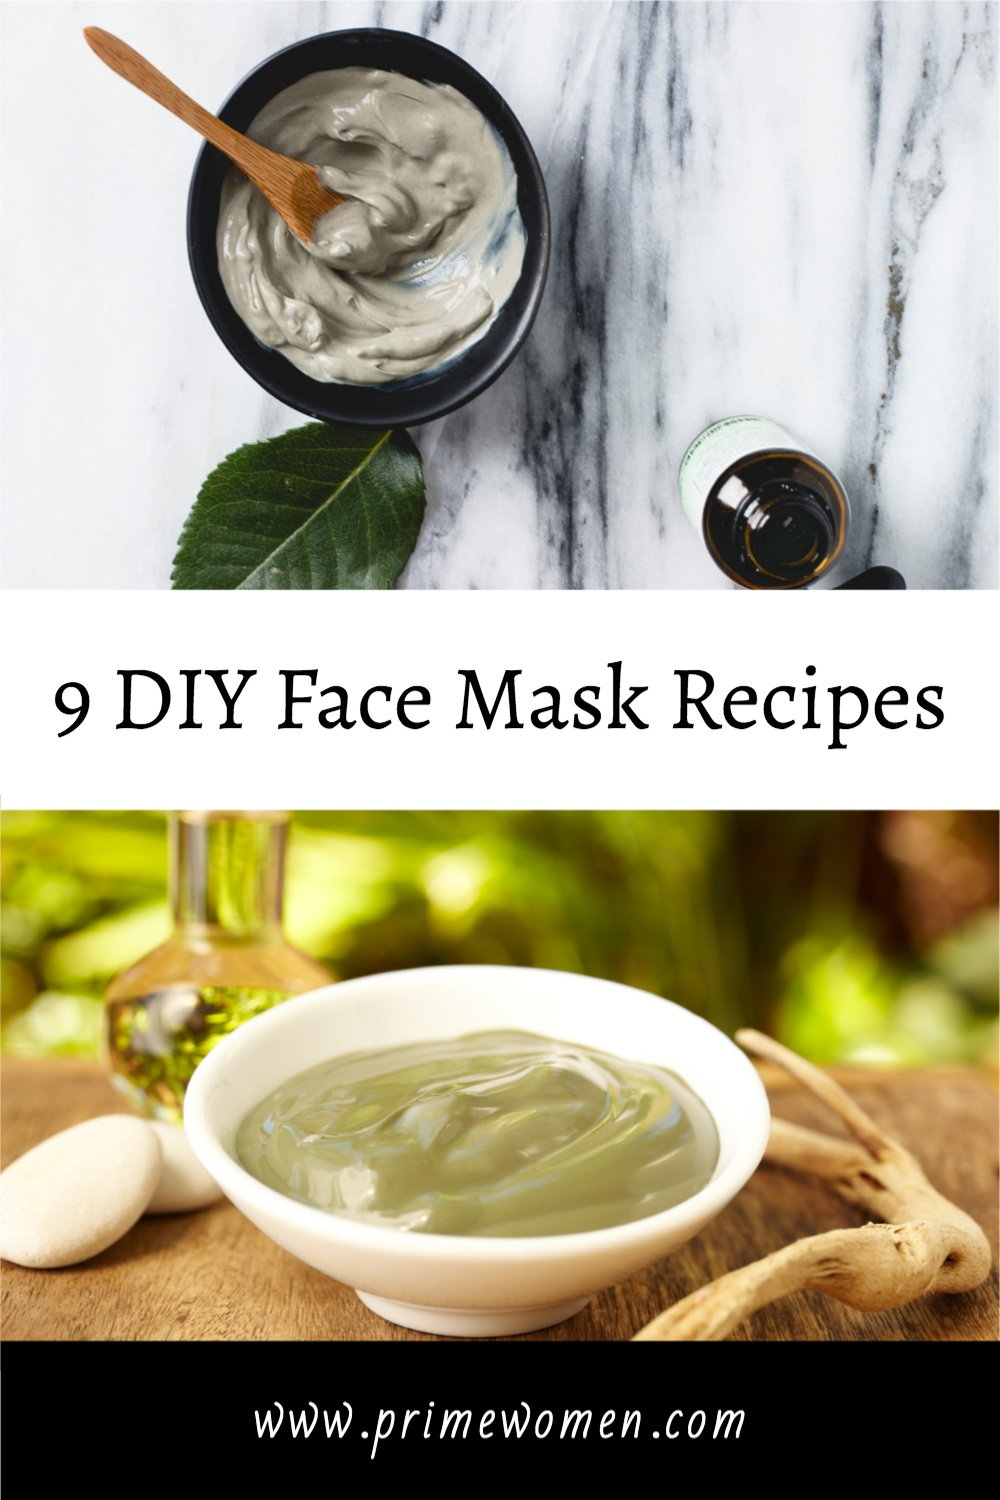 9 DIY Face Mask Recipes